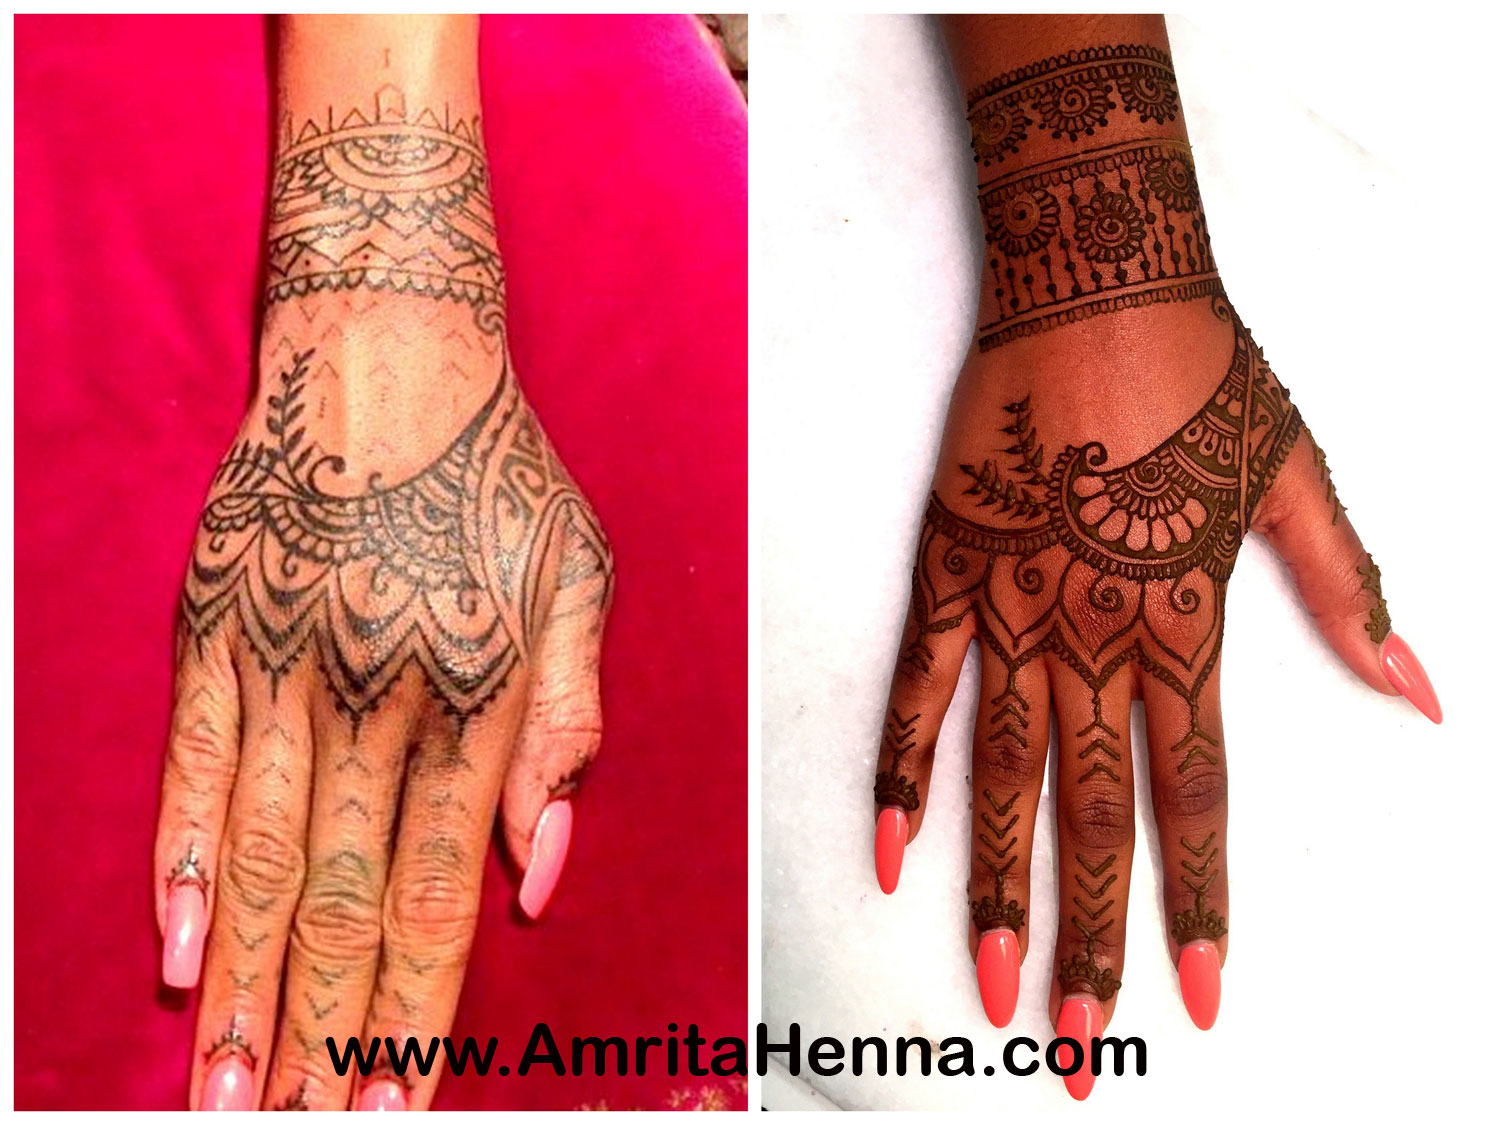 rihanna henna hand tattoo. Black Bedroom Furniture Sets. Home Design Ideas